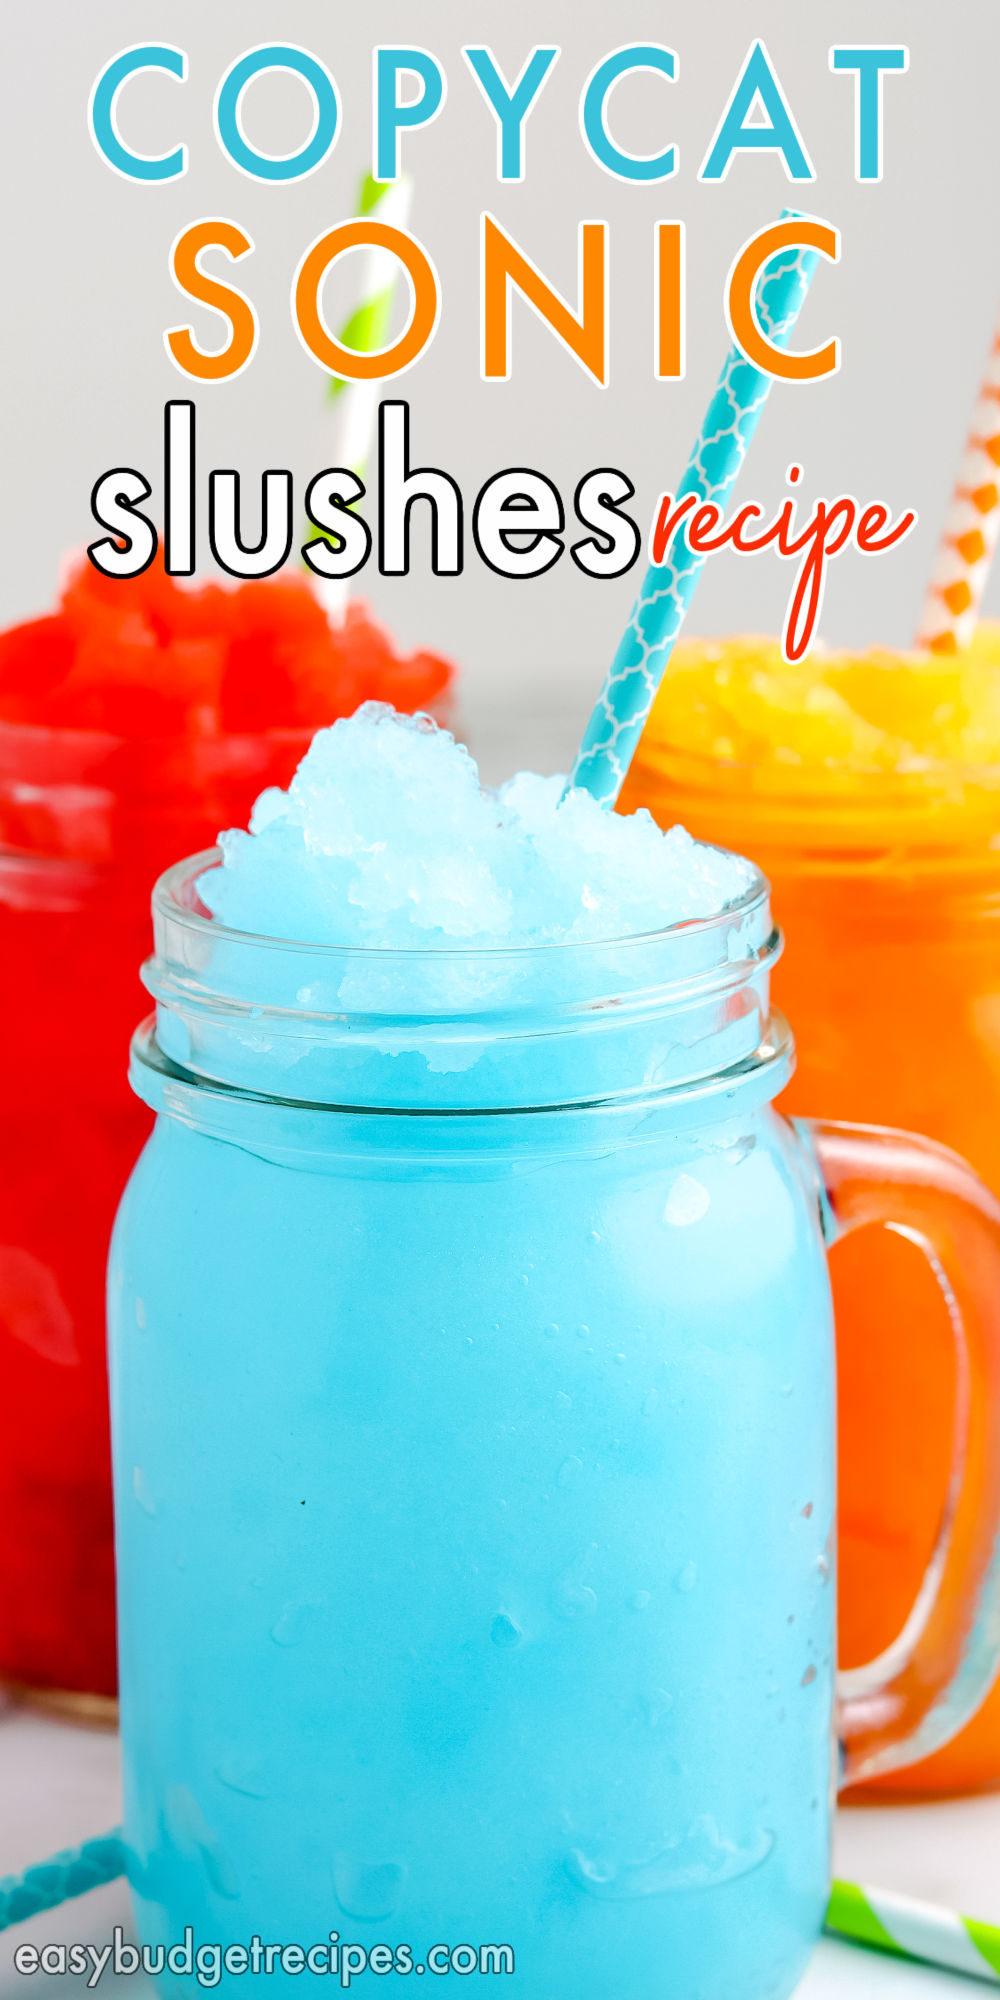 Learn how to make Copycat Sonic Slushes at home. Customize each batch with different flavors and toppings like whipped cream, ice cream, and candy.  via @easybudgetrecipes